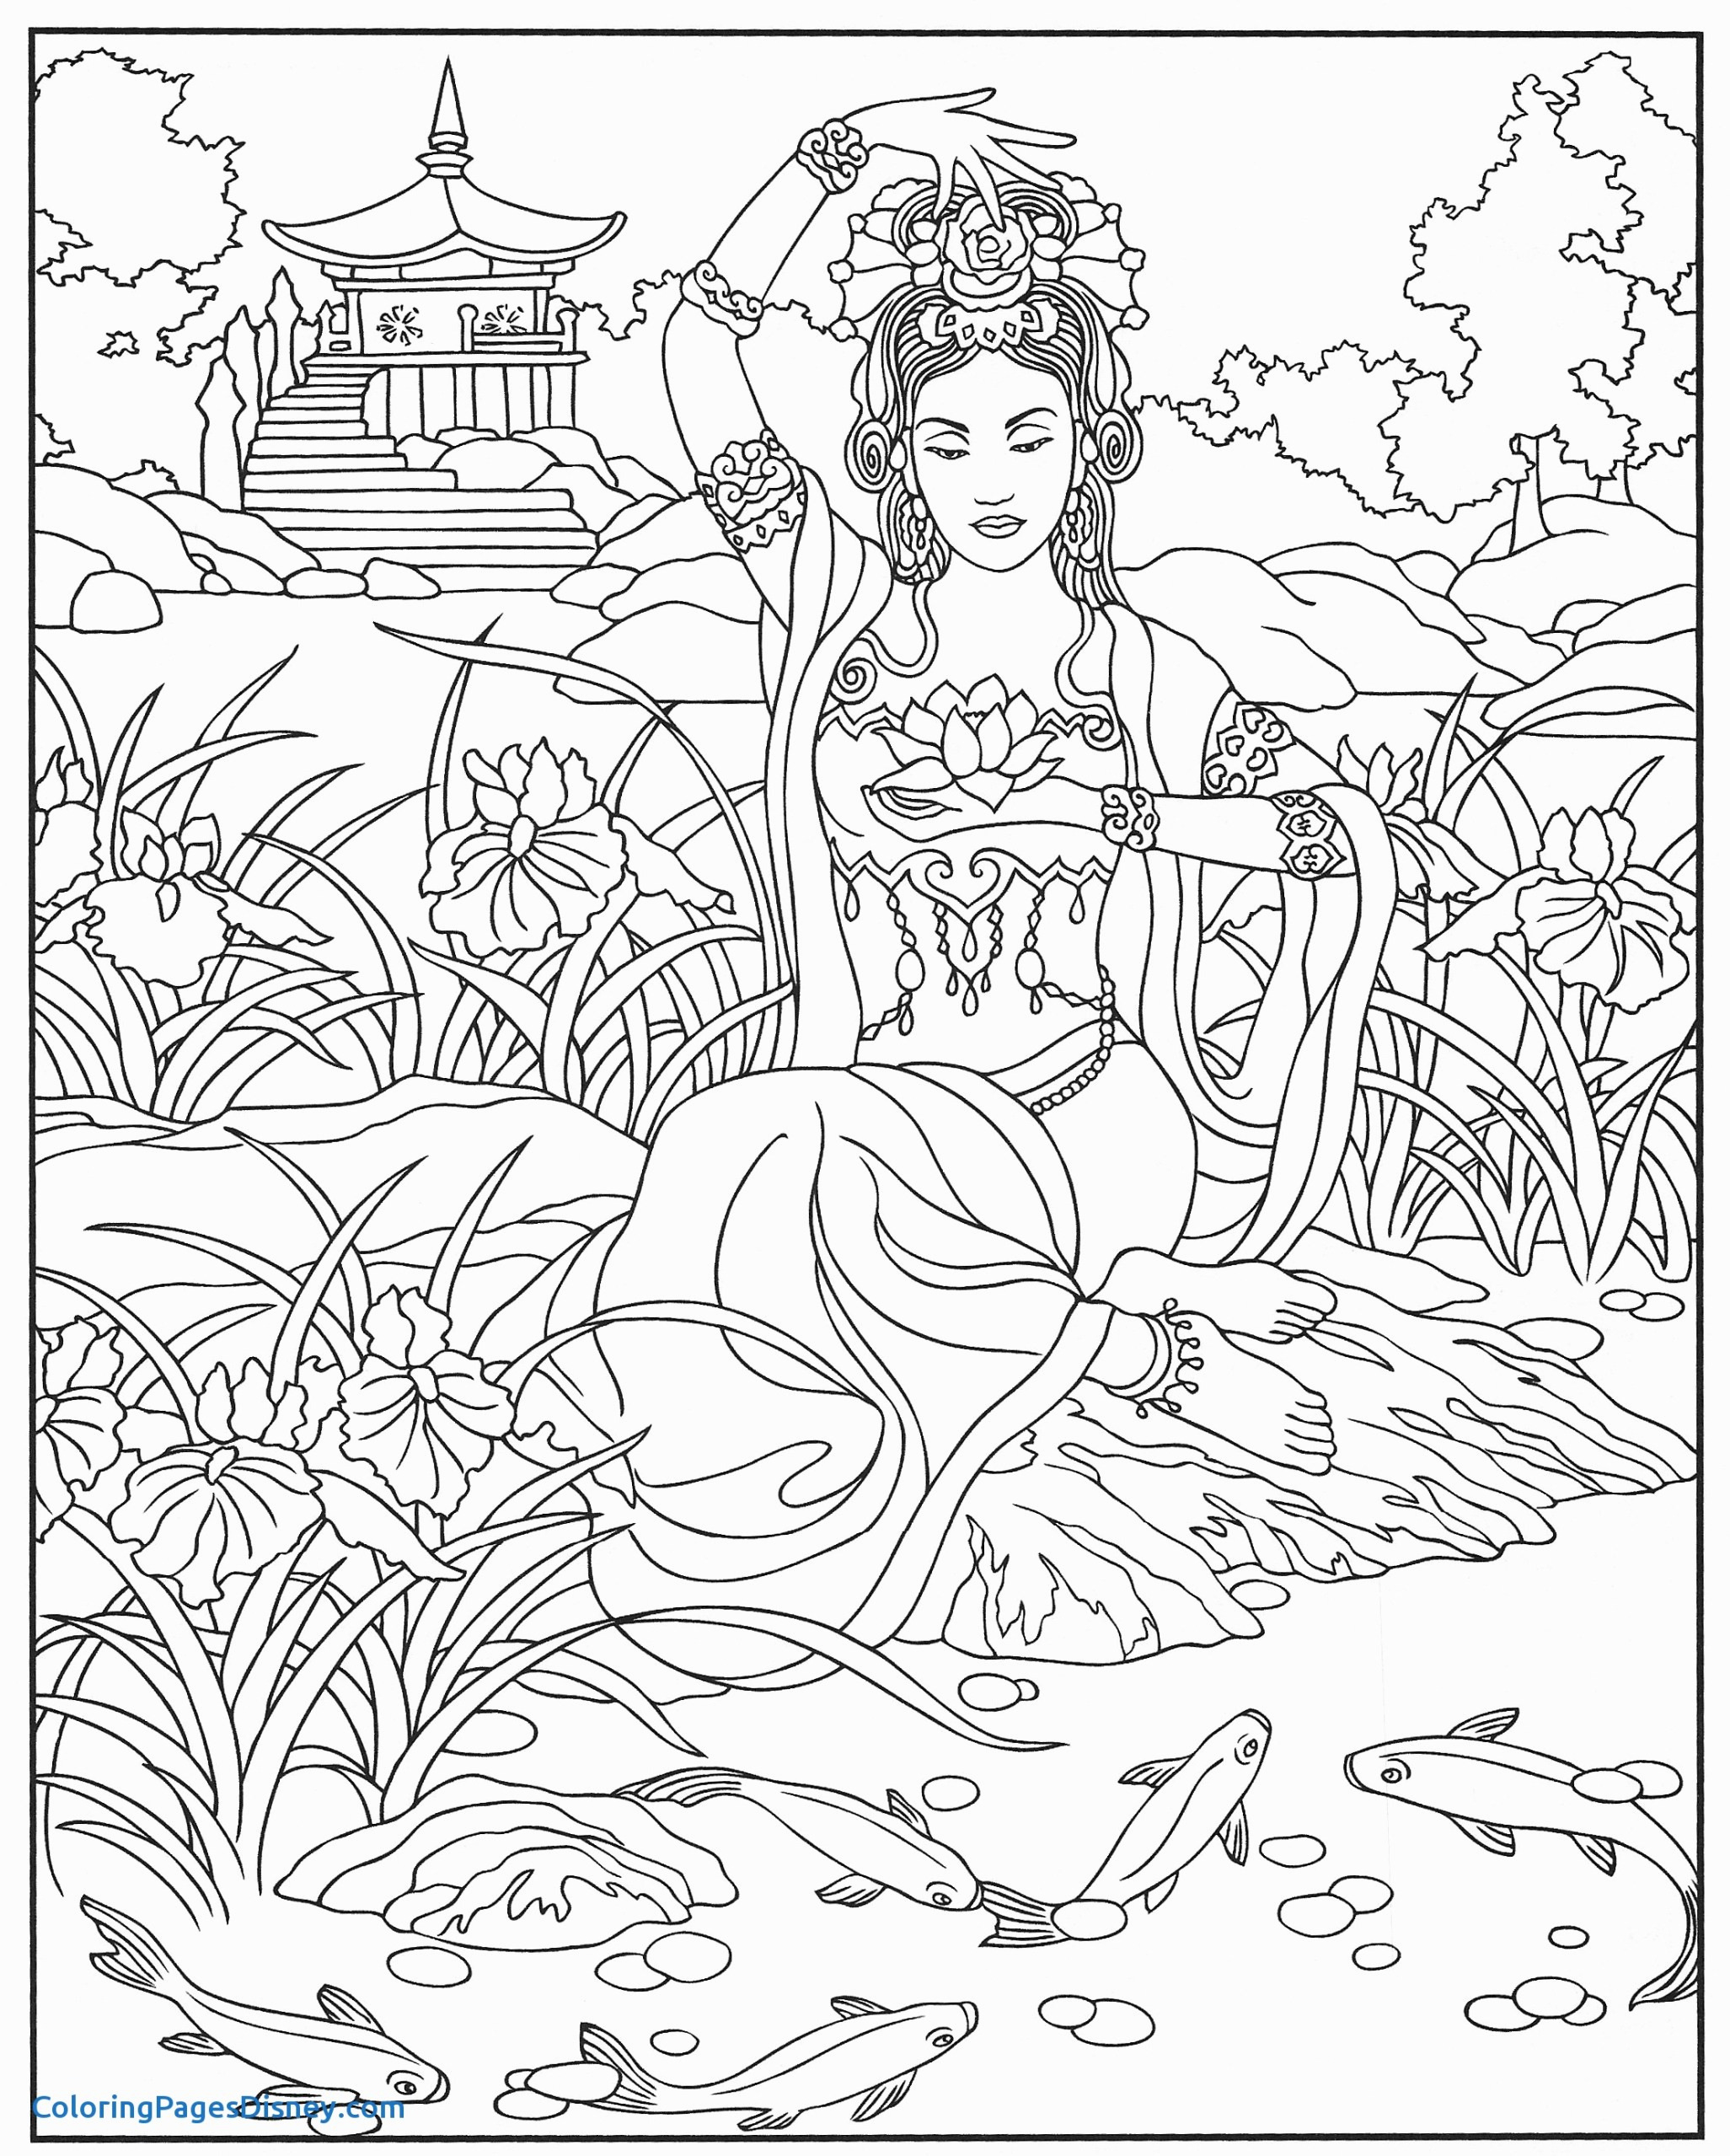 noah's ark coloring pages printable Download-Children s Church Coloring Pages Luxury Coloring Pages for Mother S Day 9-c